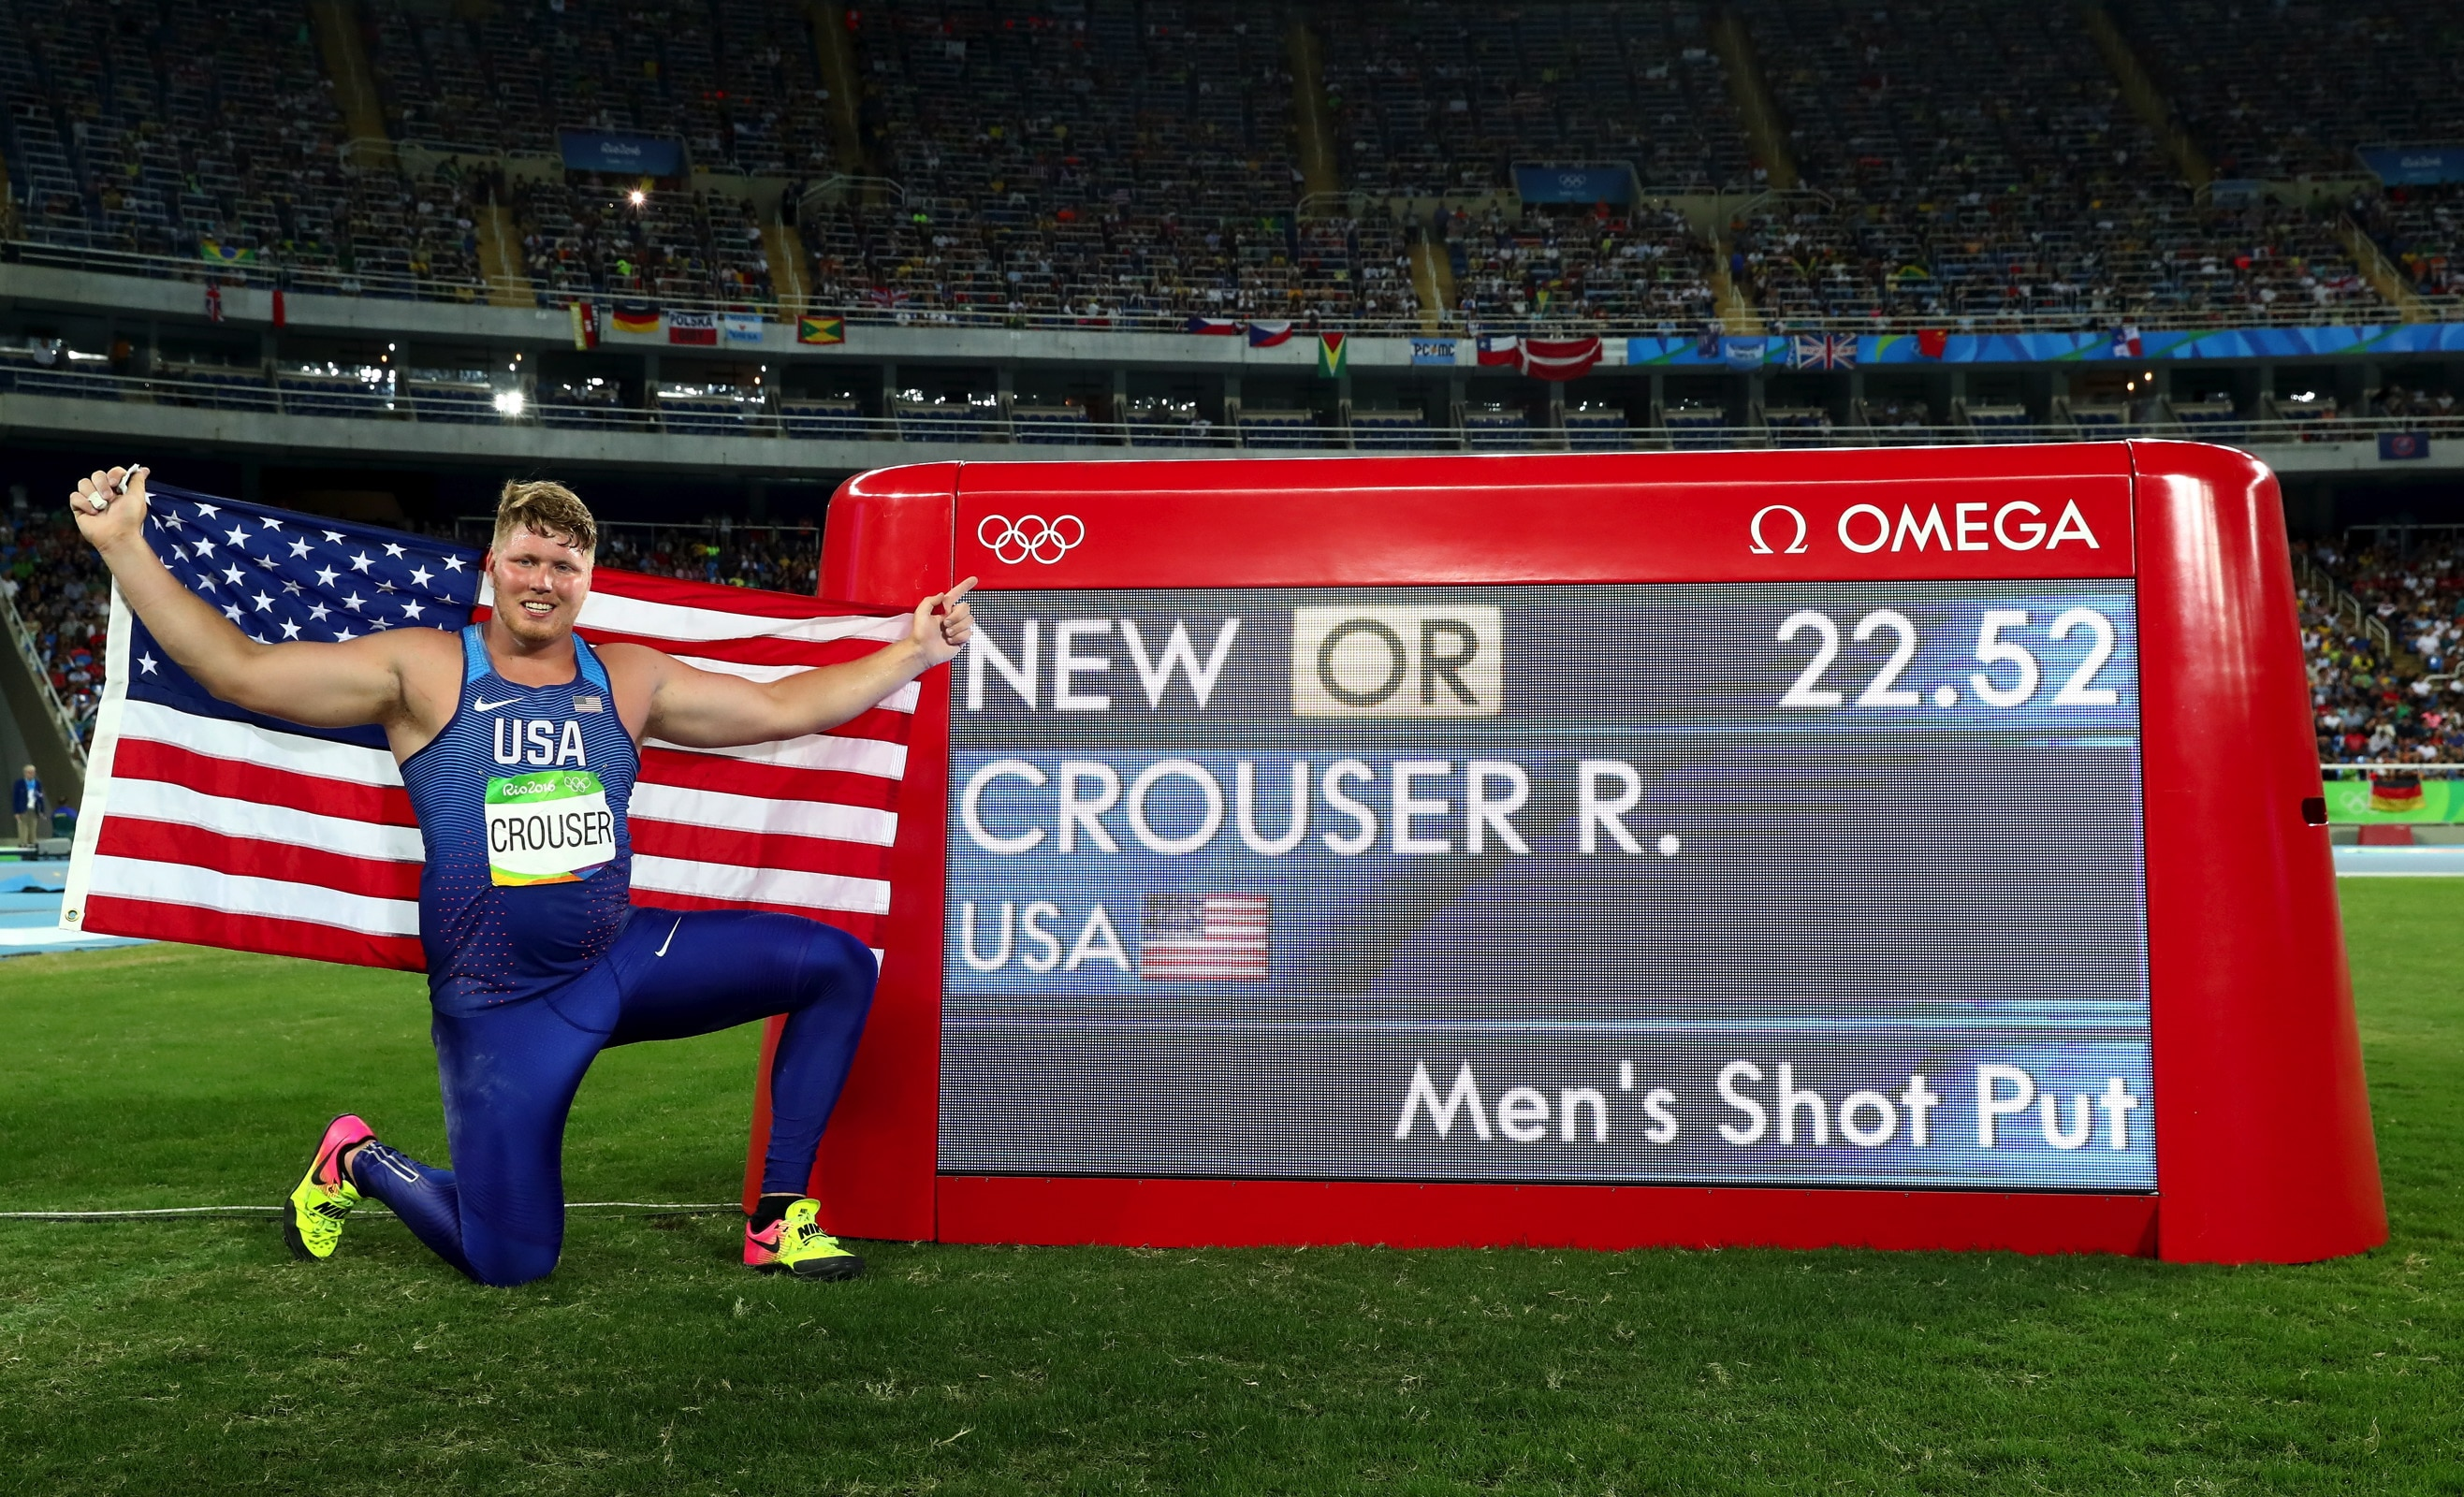 Athletics - Shot Put Men